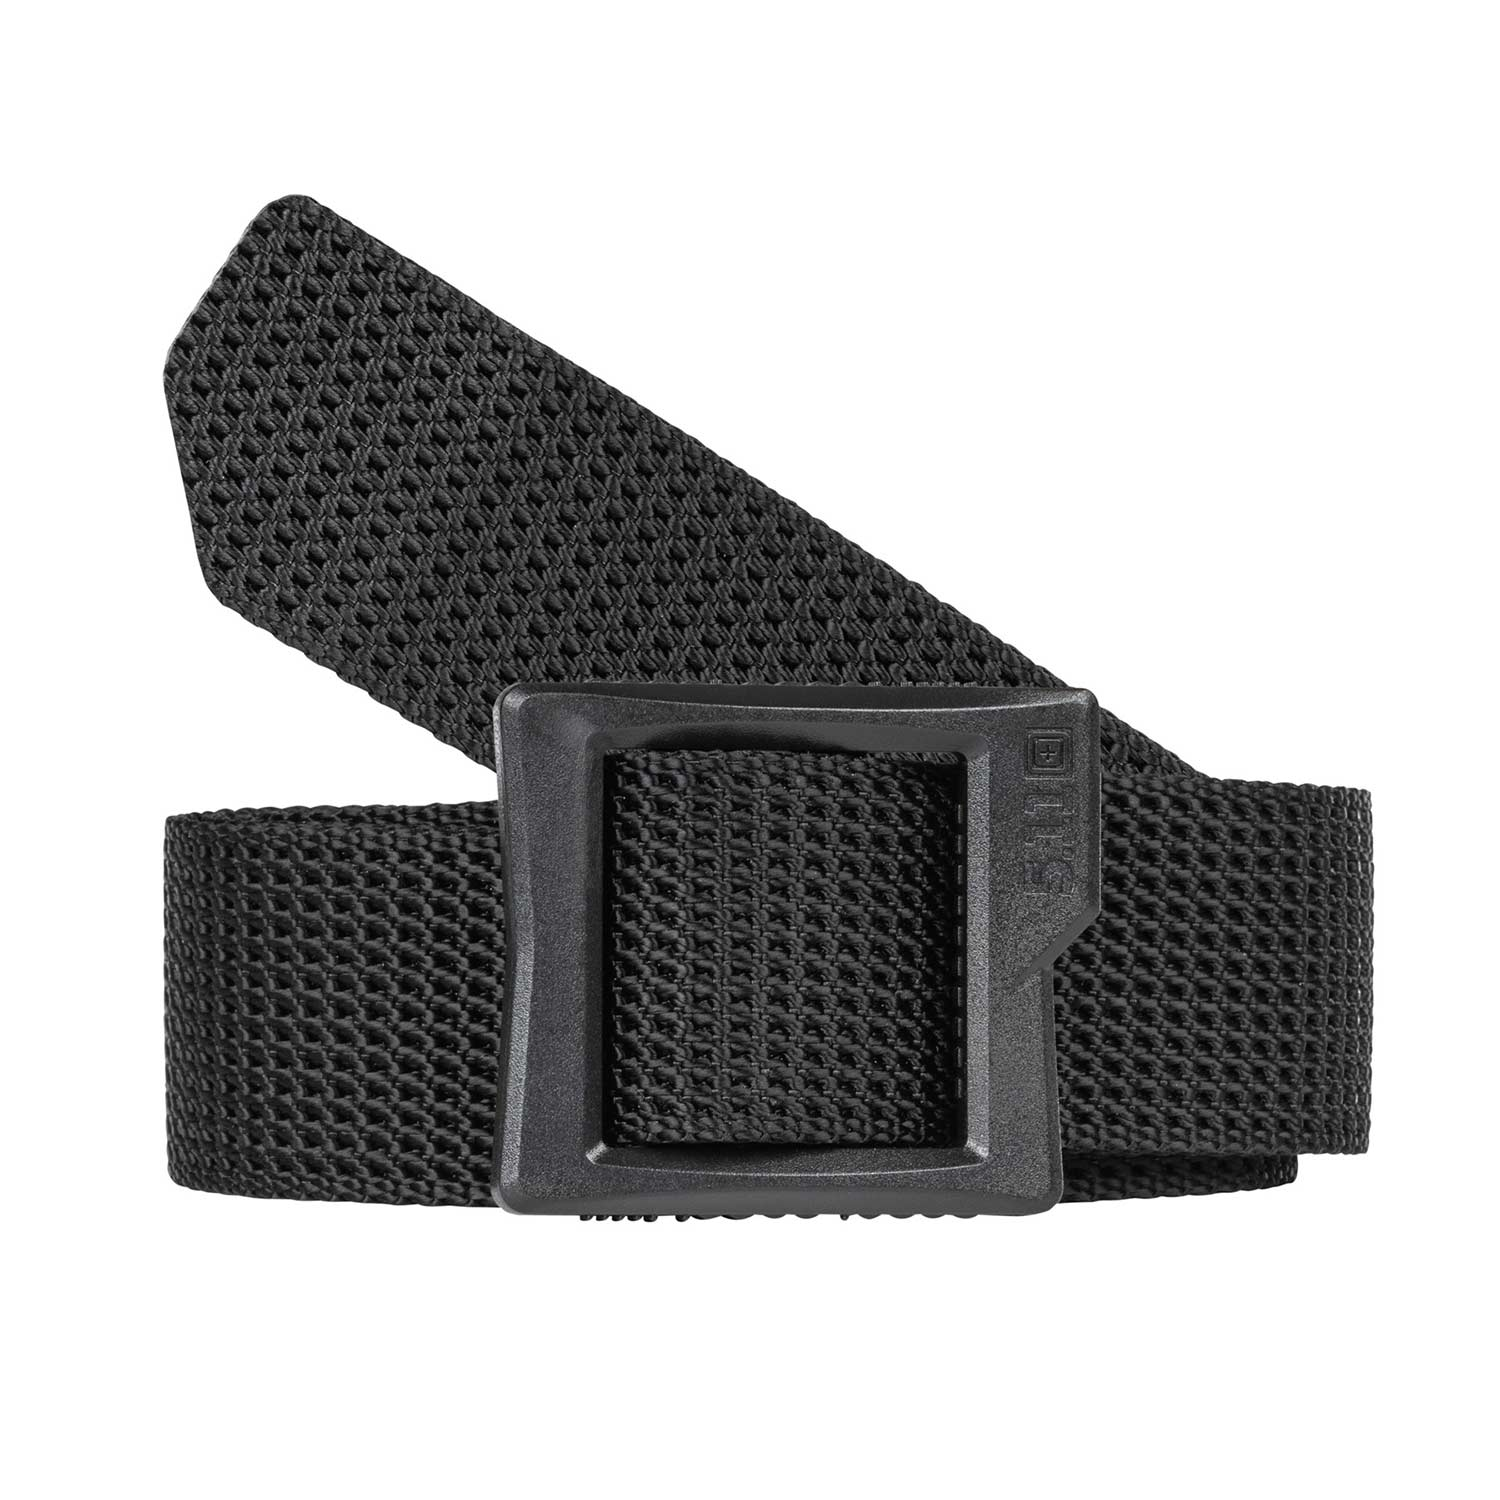 "5.11 Tactical Low Pro 1.5"" TDU Belt"